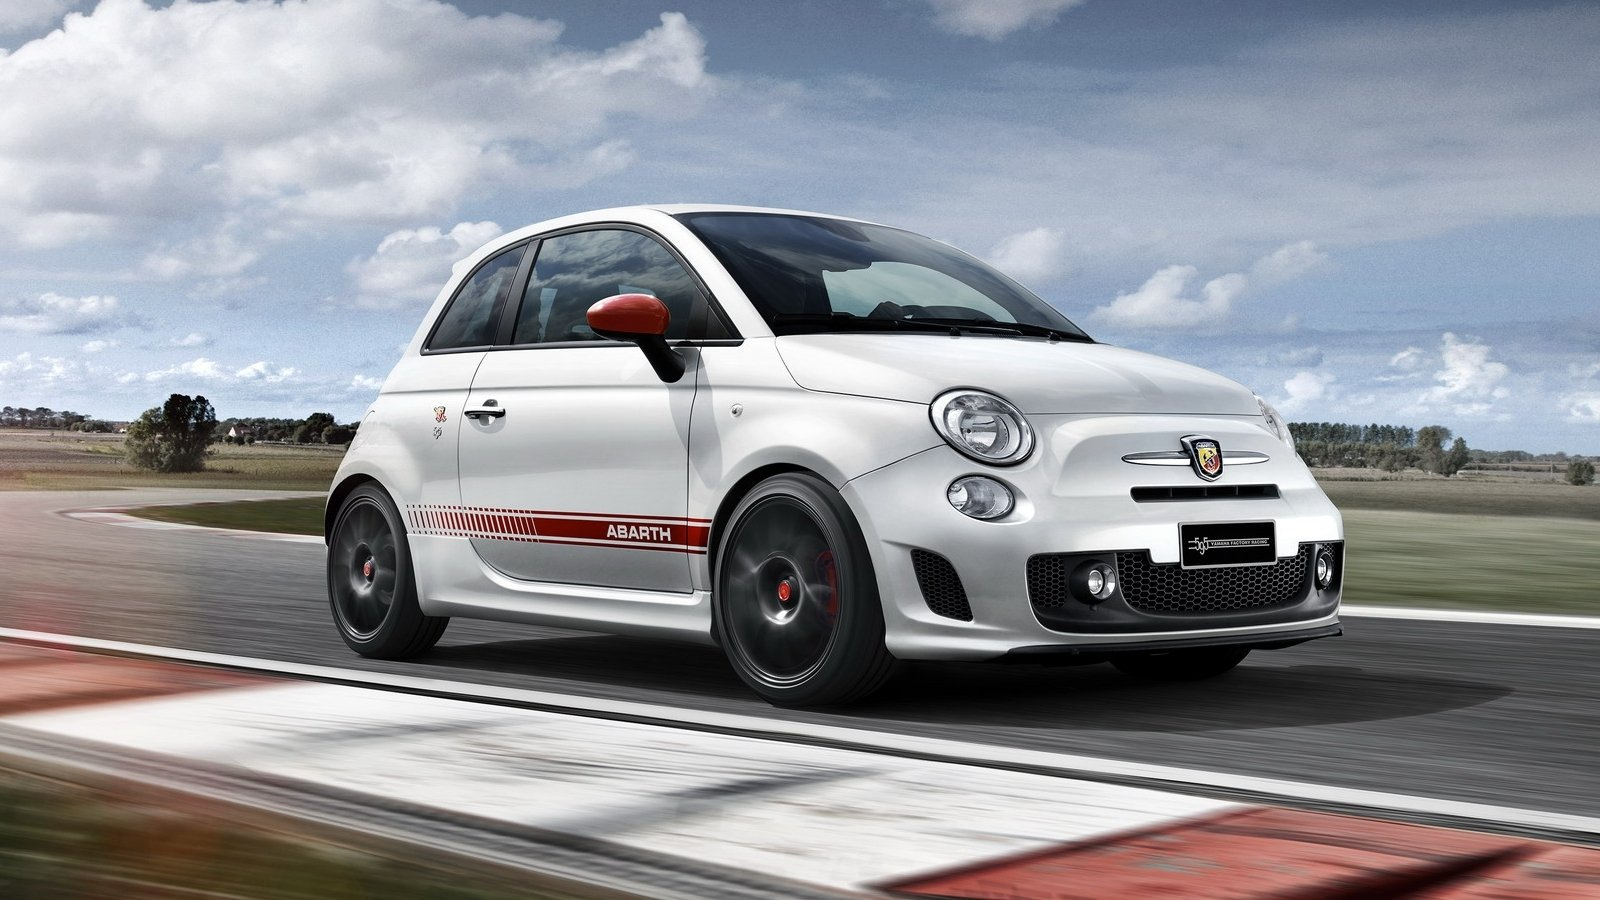 2016 abarth 595 yamaha factory racing edition picture for Garage abarth paris